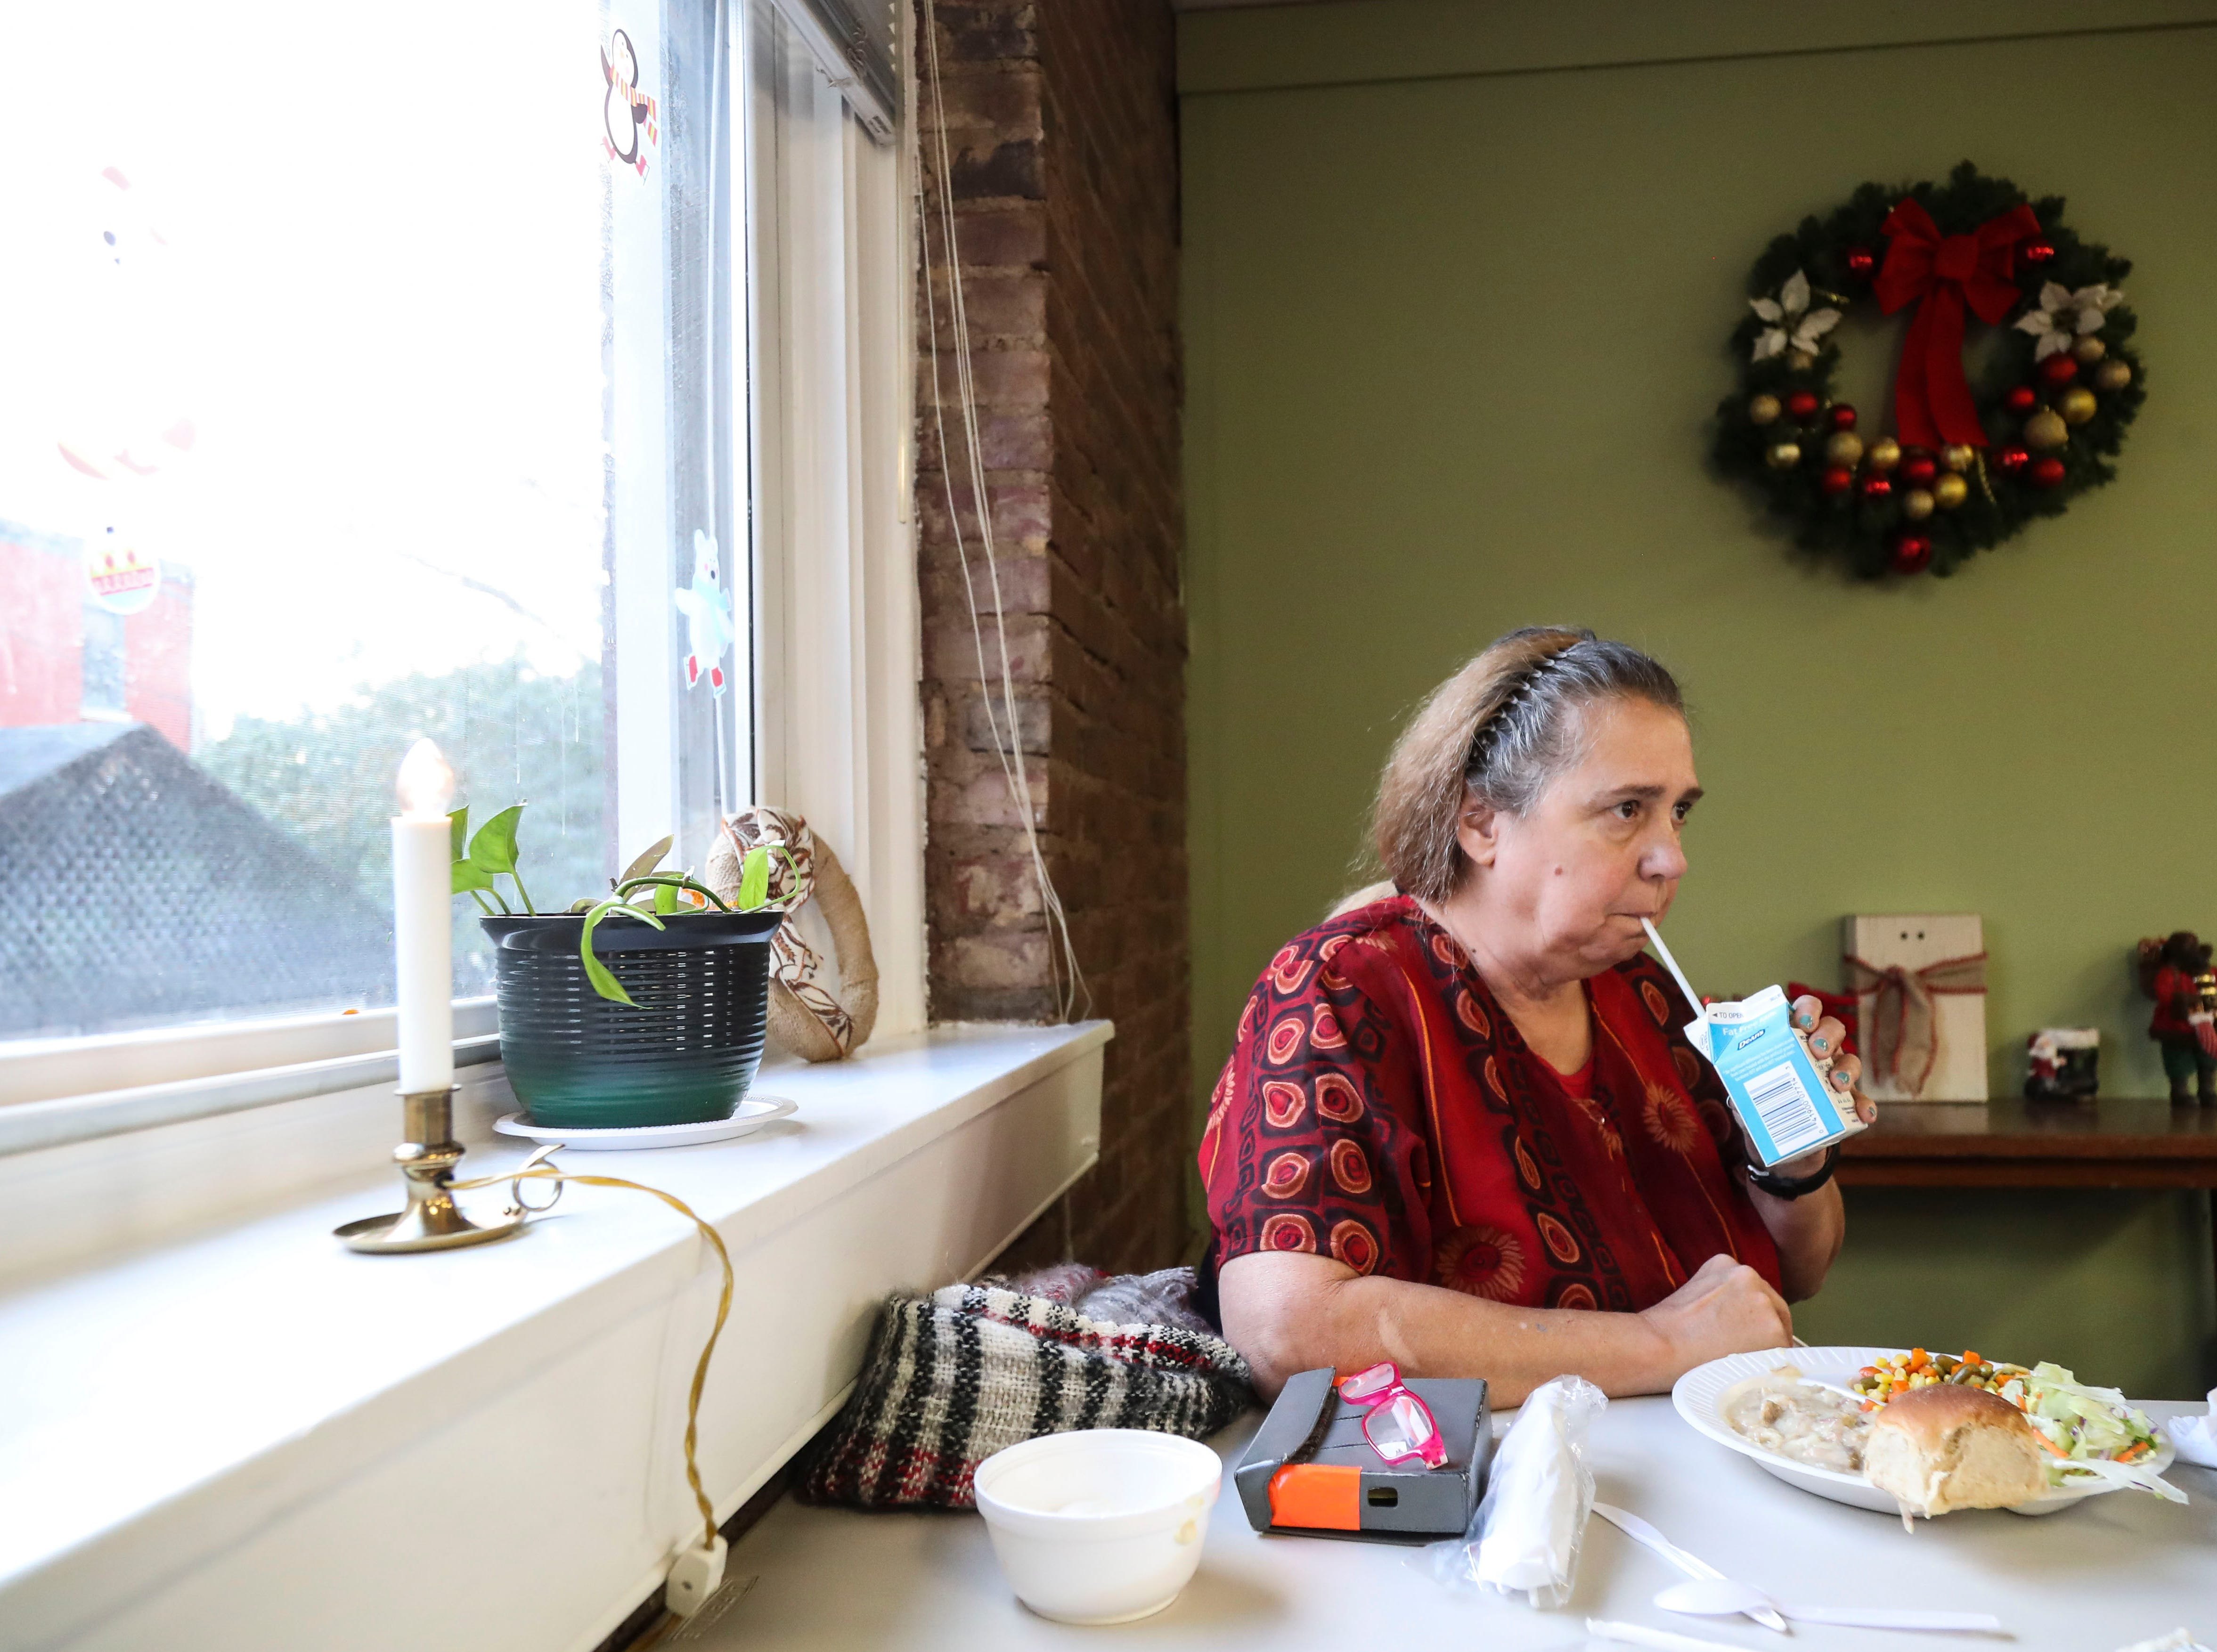 Michele Dutcher, 64, eats lunch for 50 cents at the Kling Center in Old Louisville several times a week. It's a chance for her to get a decent meal as well as socialize.